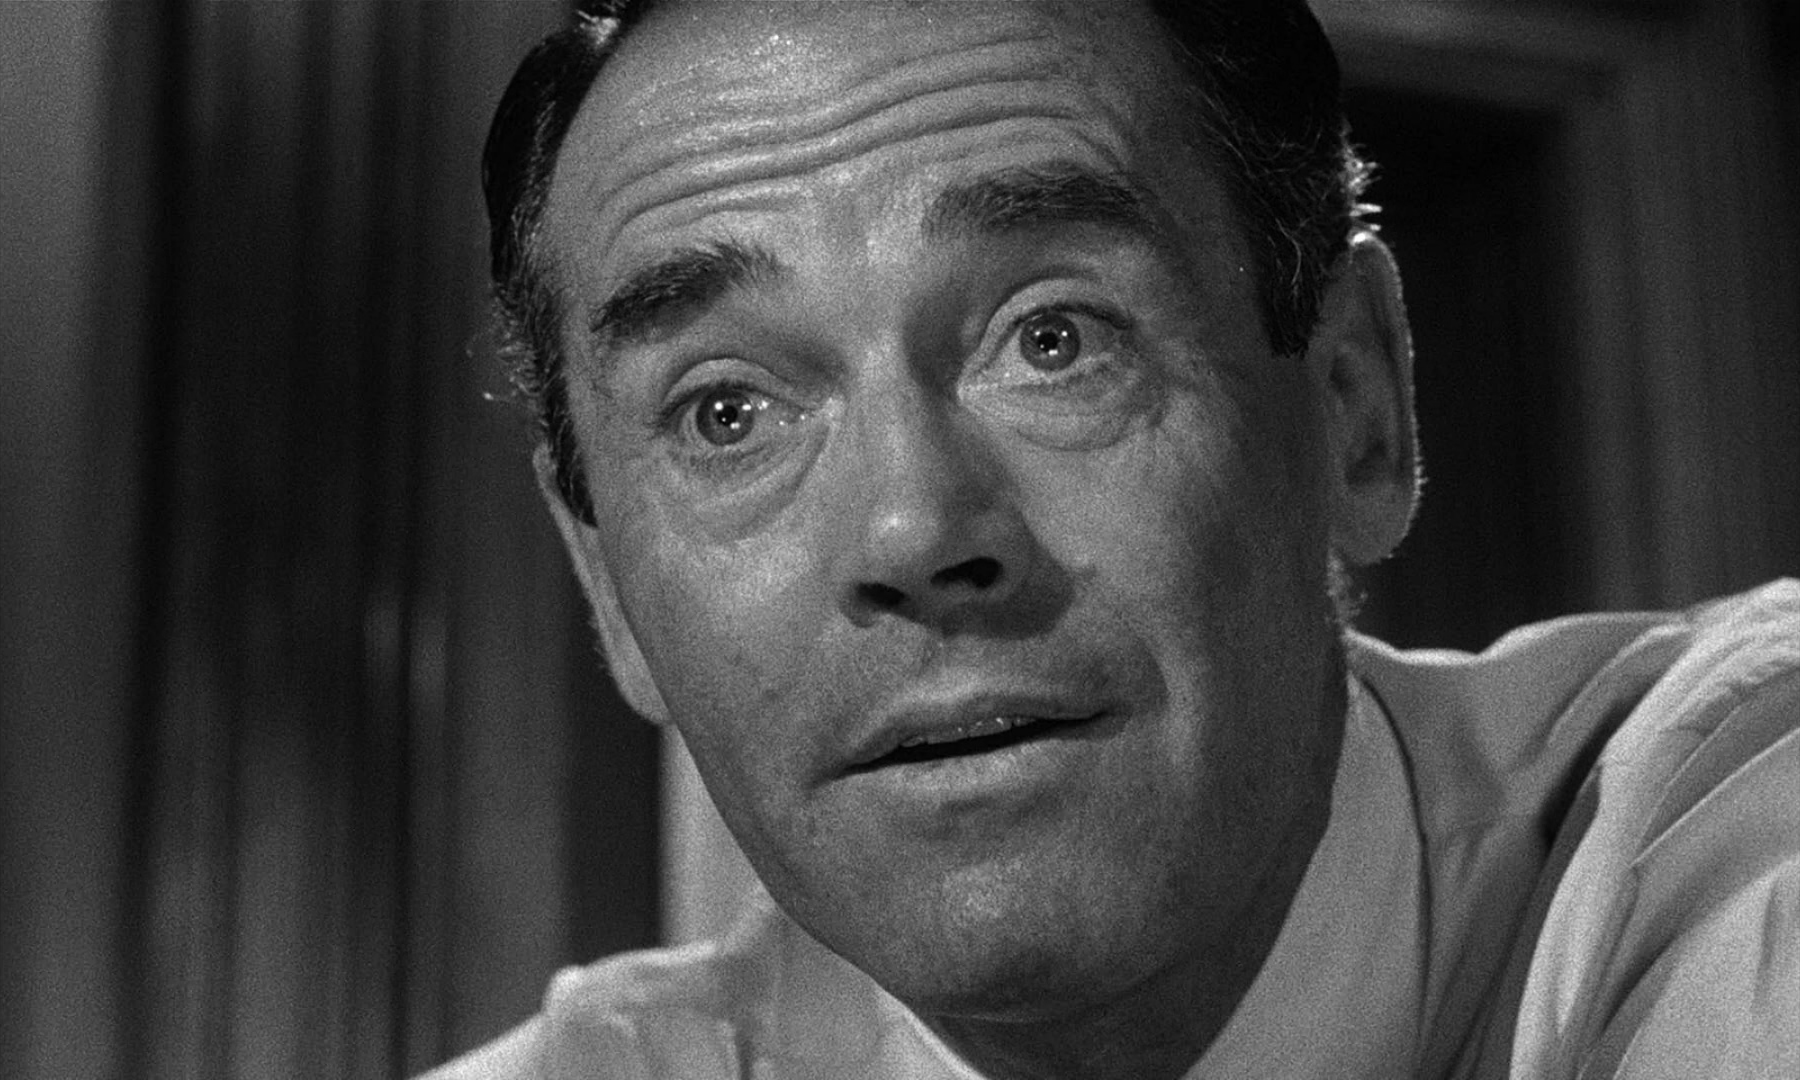 Criterion Collection S 12 Angry Men Blu Ray What S The Verdict